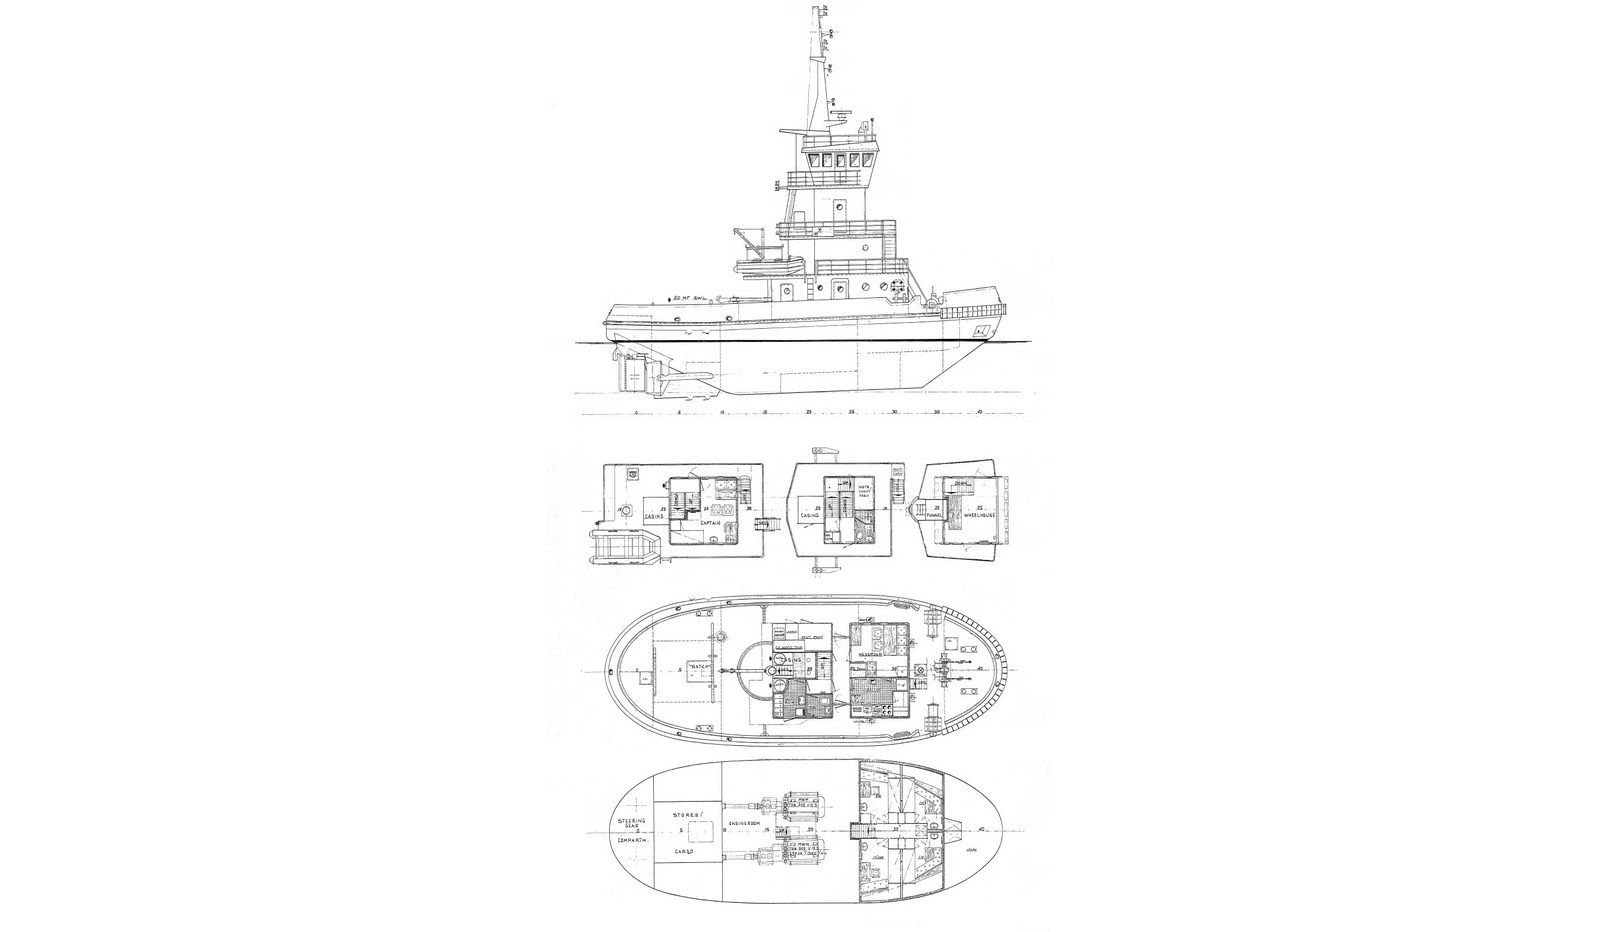 Drawing of Tug and Barge combination